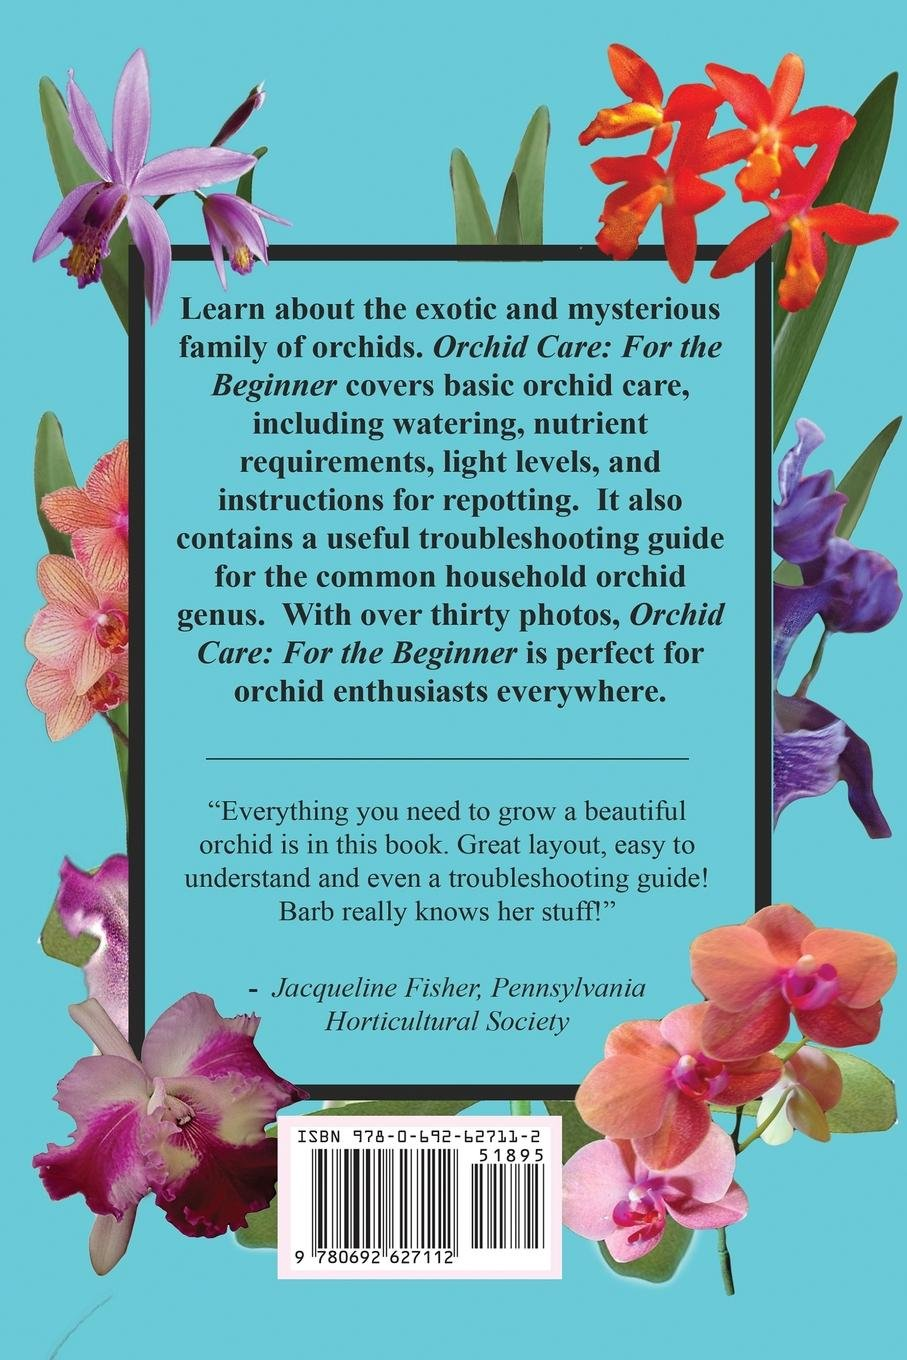 Orchid Care: For the Beginner: Barb Schmidt: 9780692627112: Amazon.com:  Books